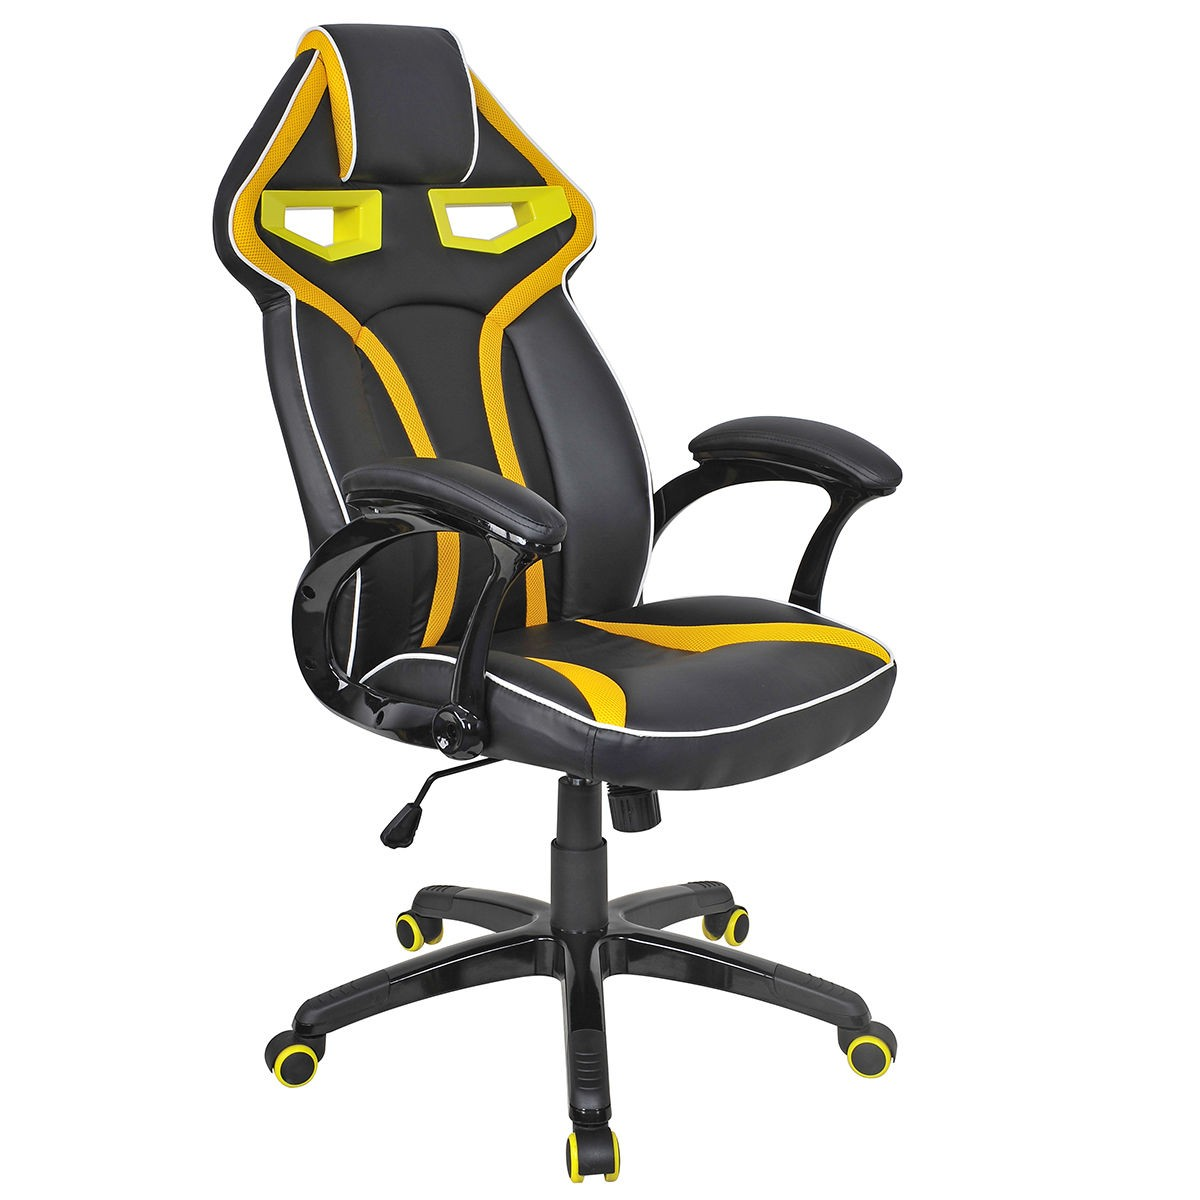 Racing Seat Office Chair High Back Racing Bucket Seat Gaming Chair Computer Pc Desk